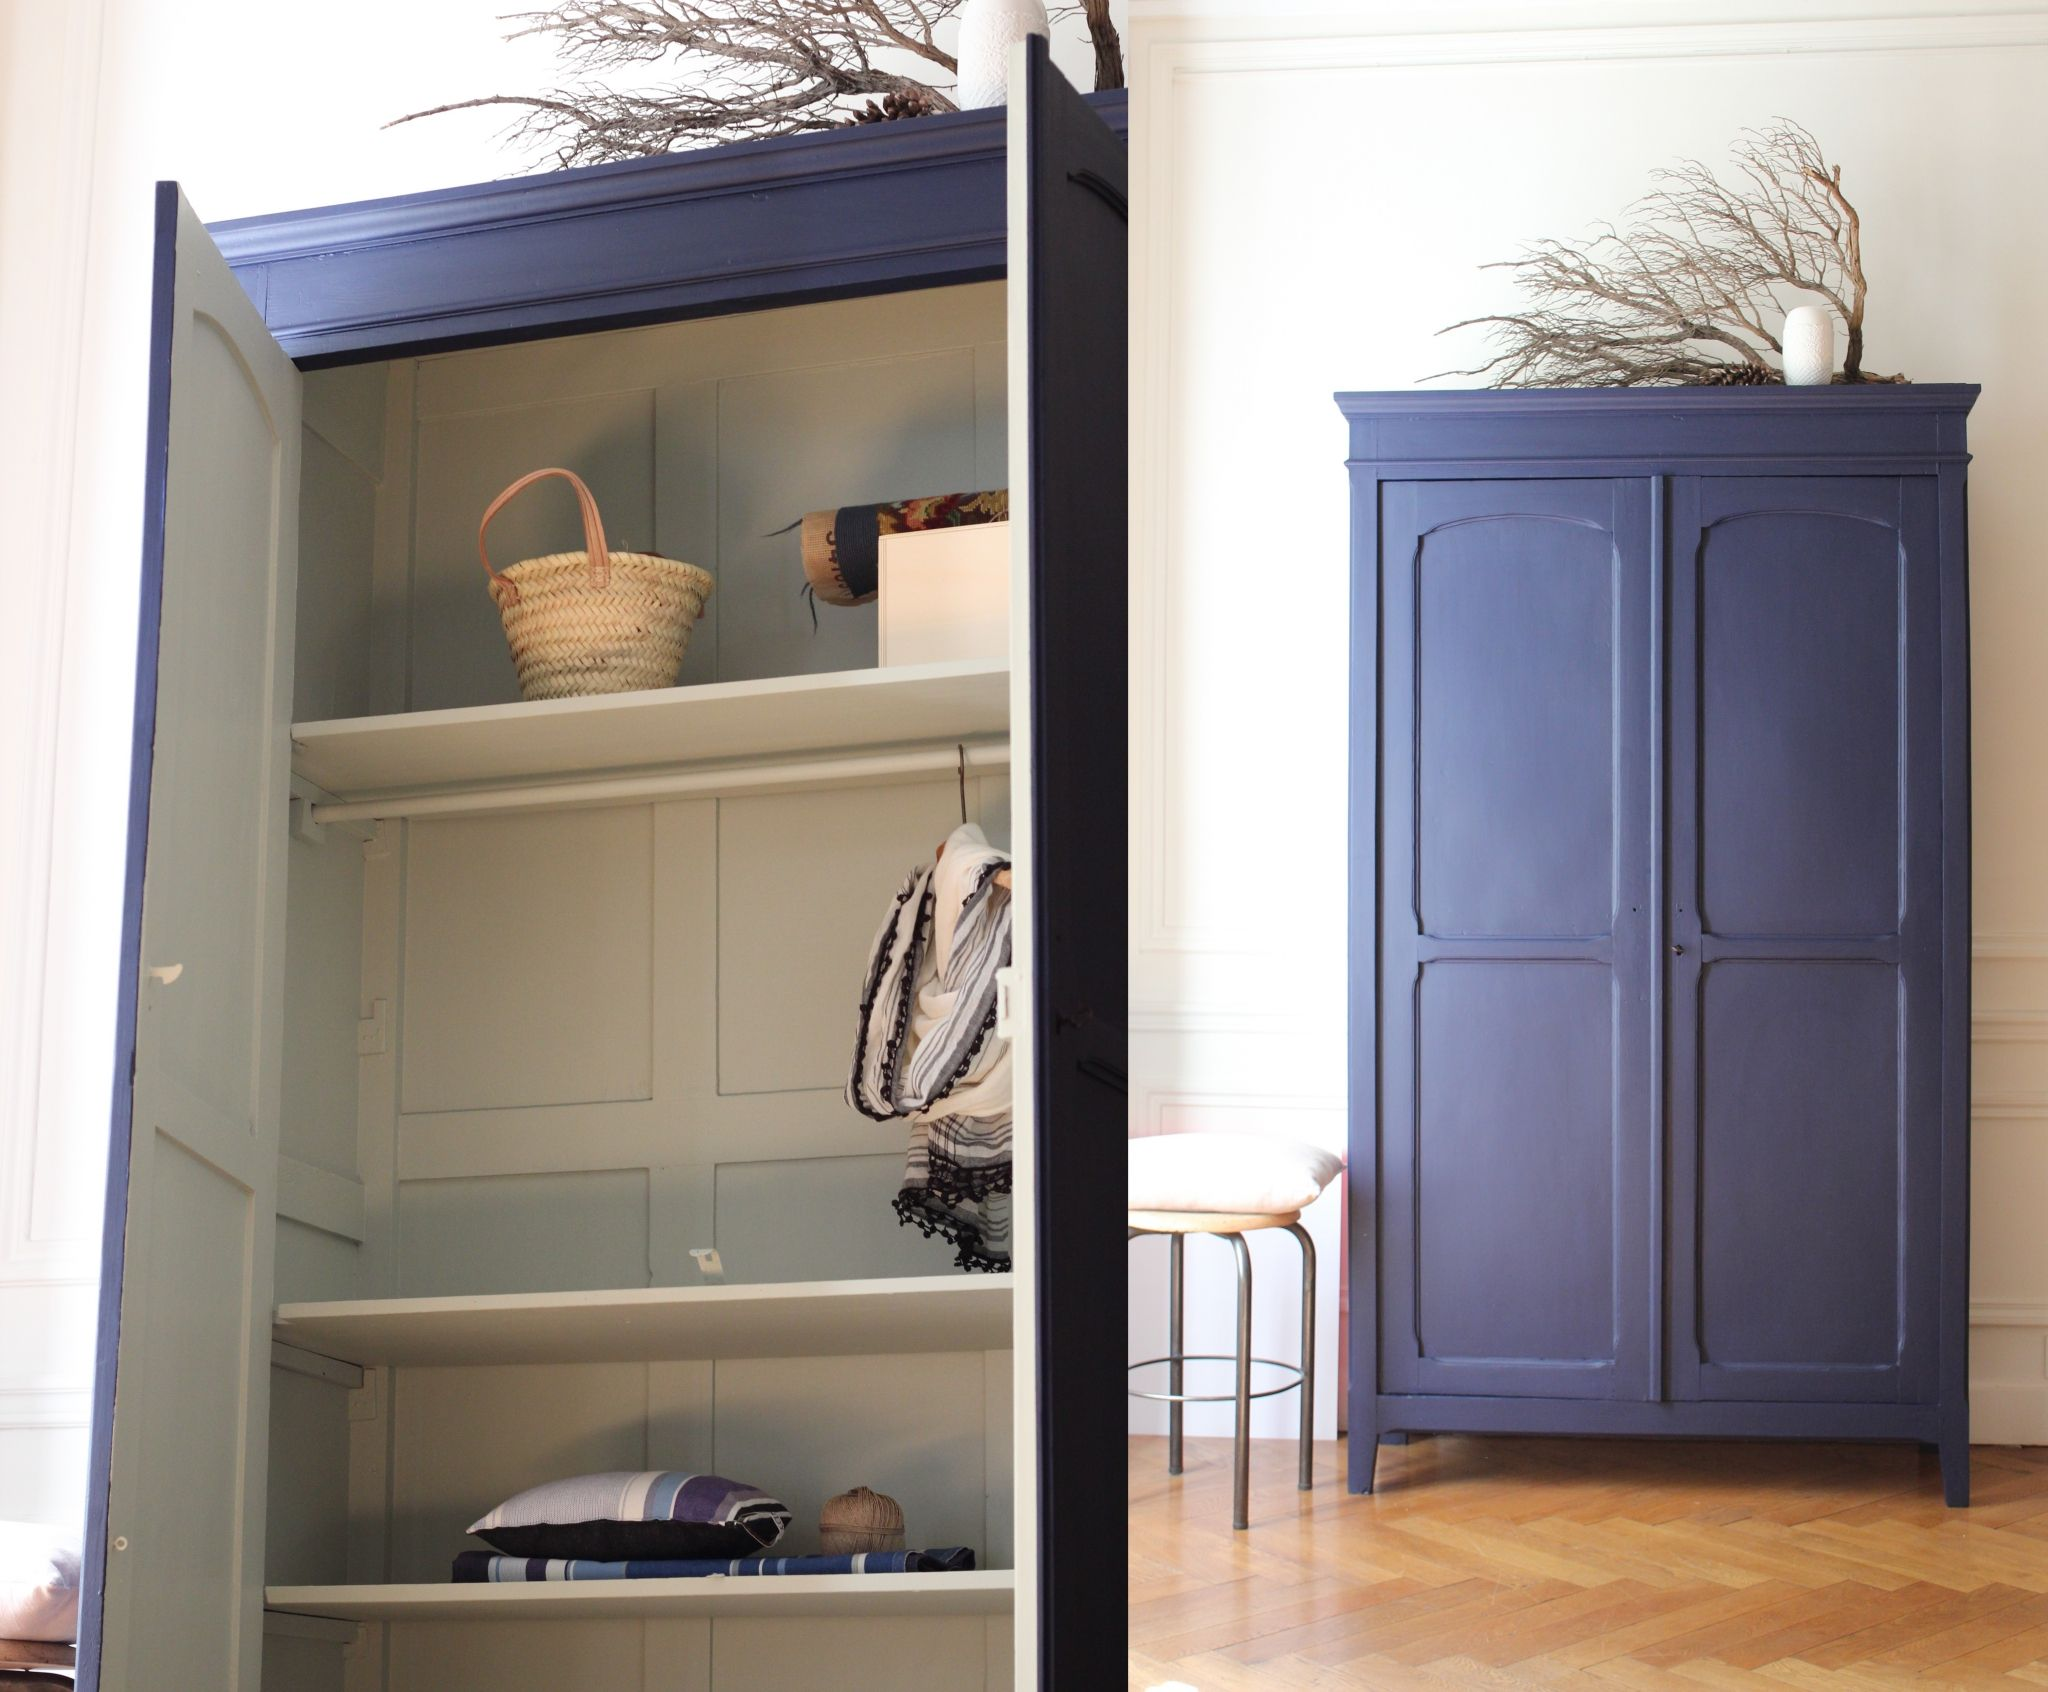 armoire penderie bleu nuit mobilier vintage d suet r tro trendy little 2 home armoire. Black Bedroom Furniture Sets. Home Design Ideas